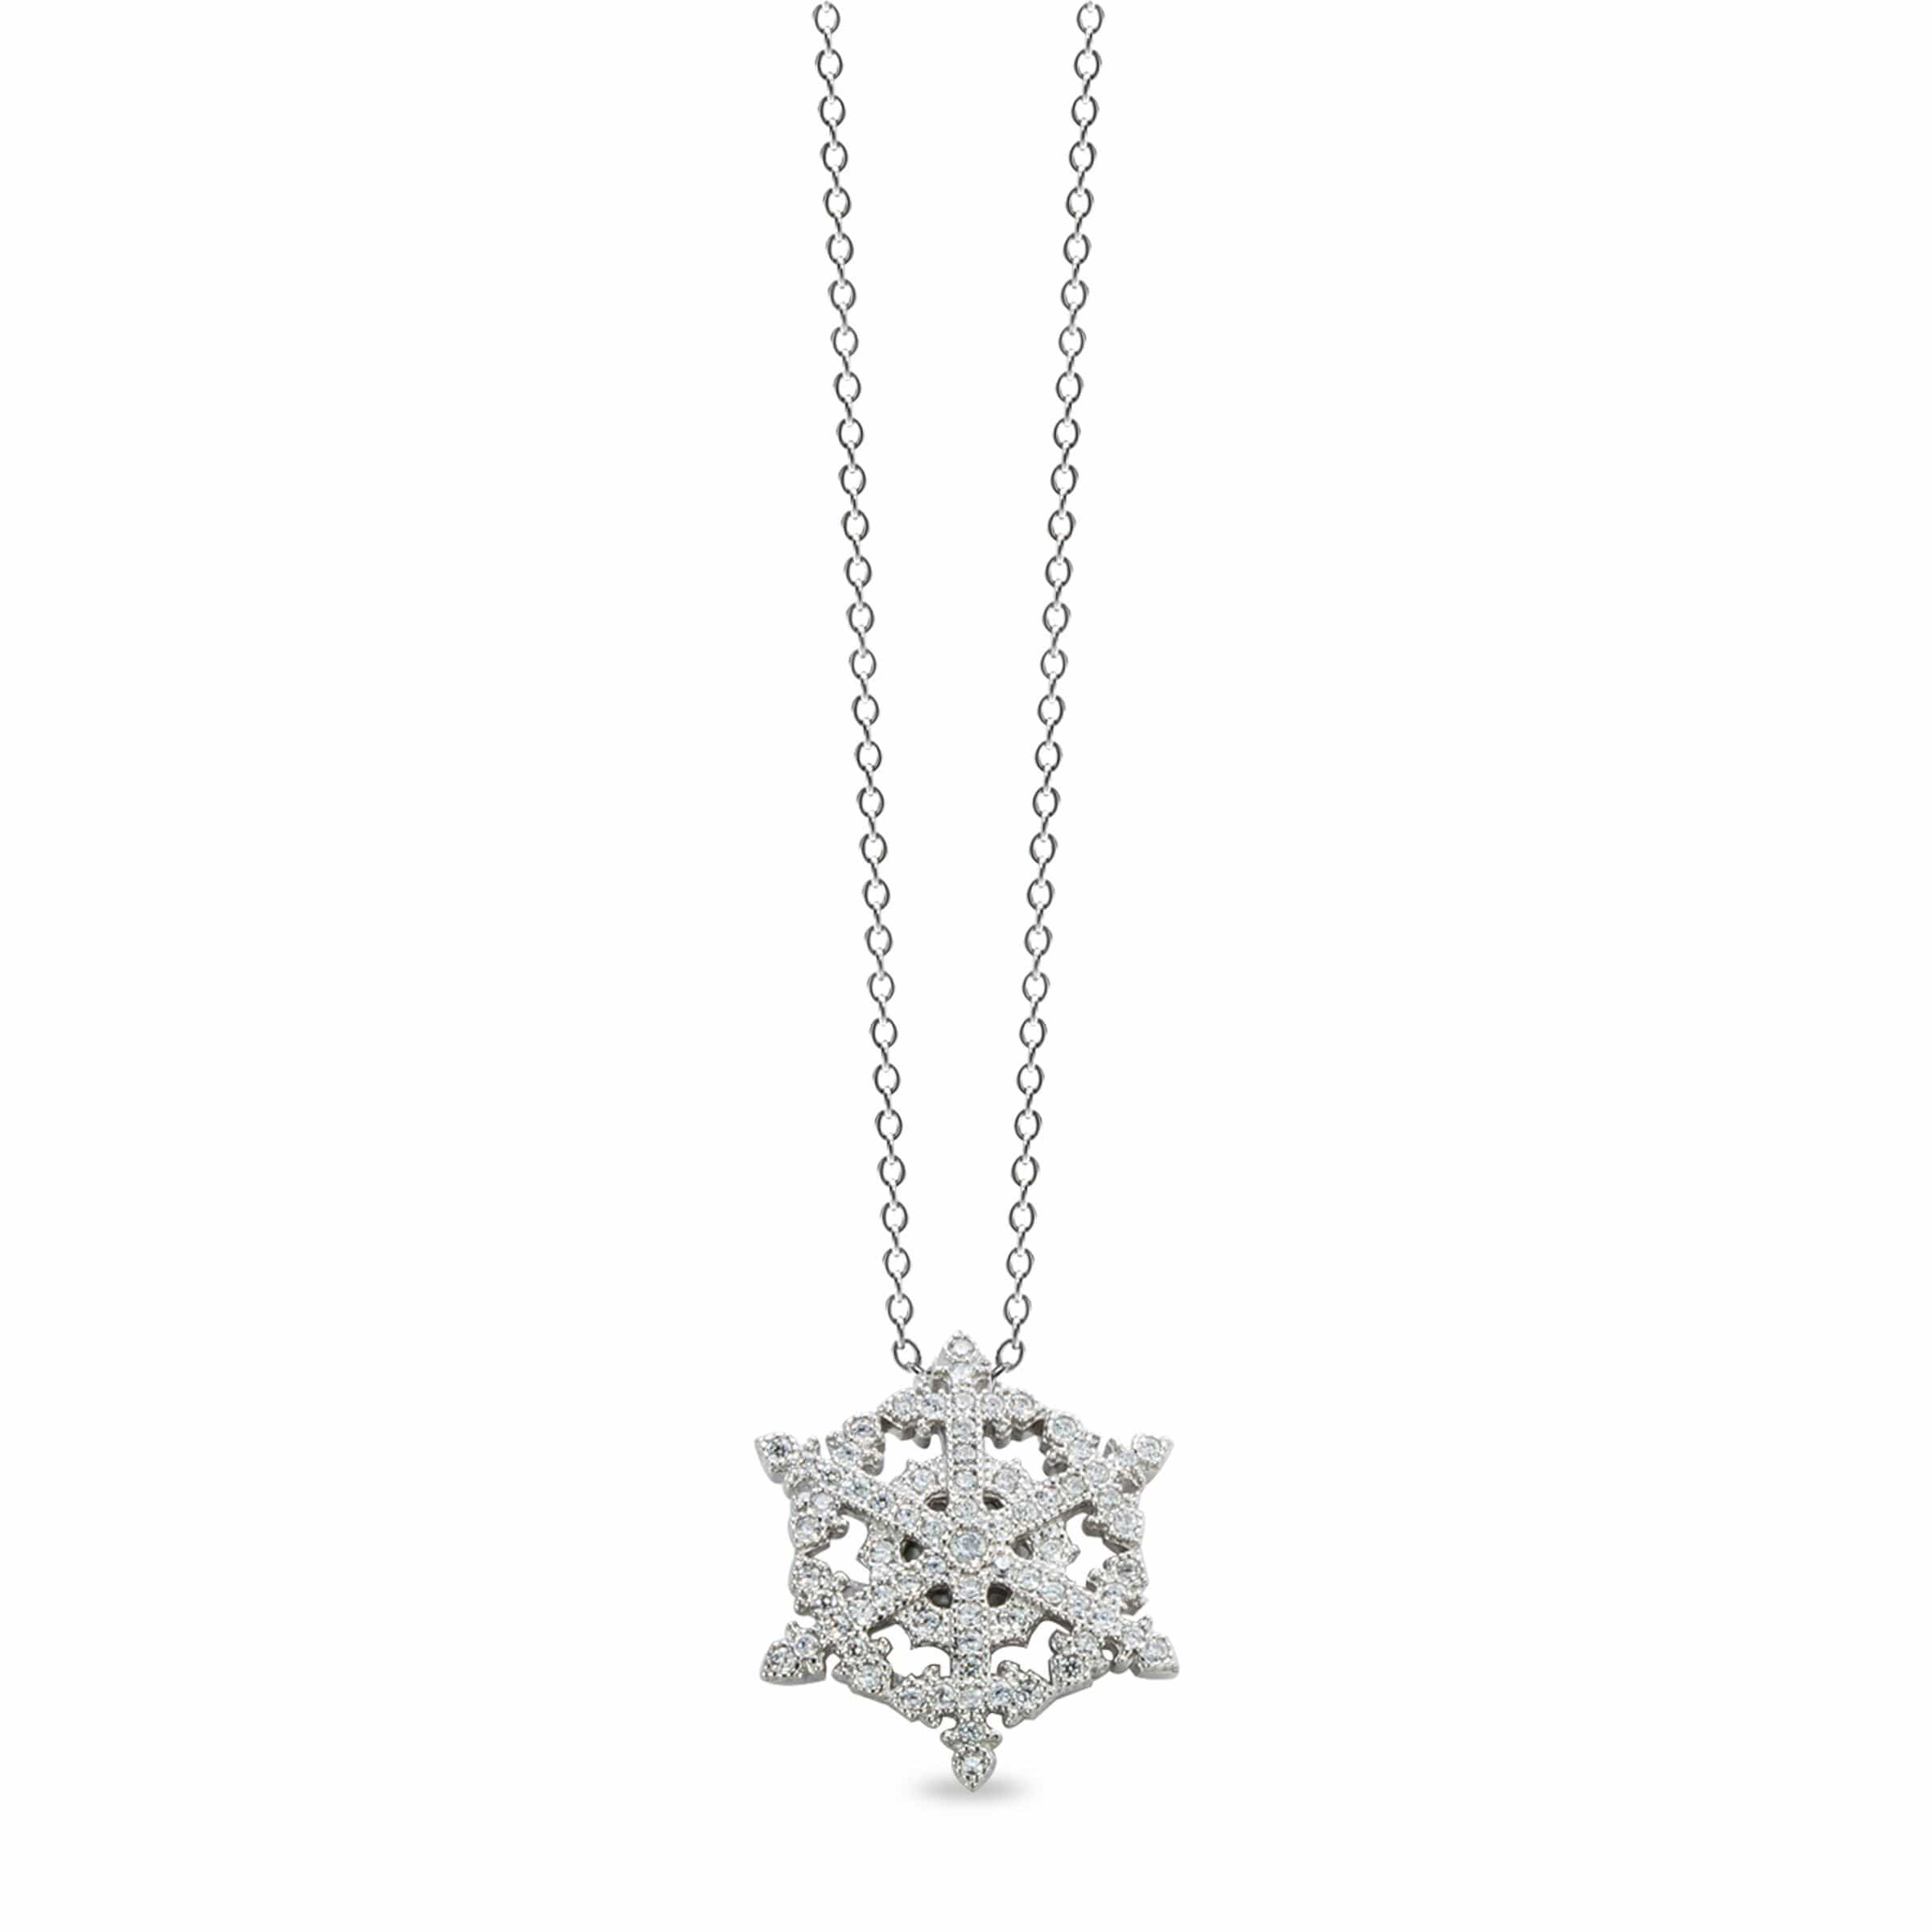 Platinum Finish Sterling Silver Micropave Snowflake Pendant - BL2158N-Kelly Waters-Renee Taylor Gallery